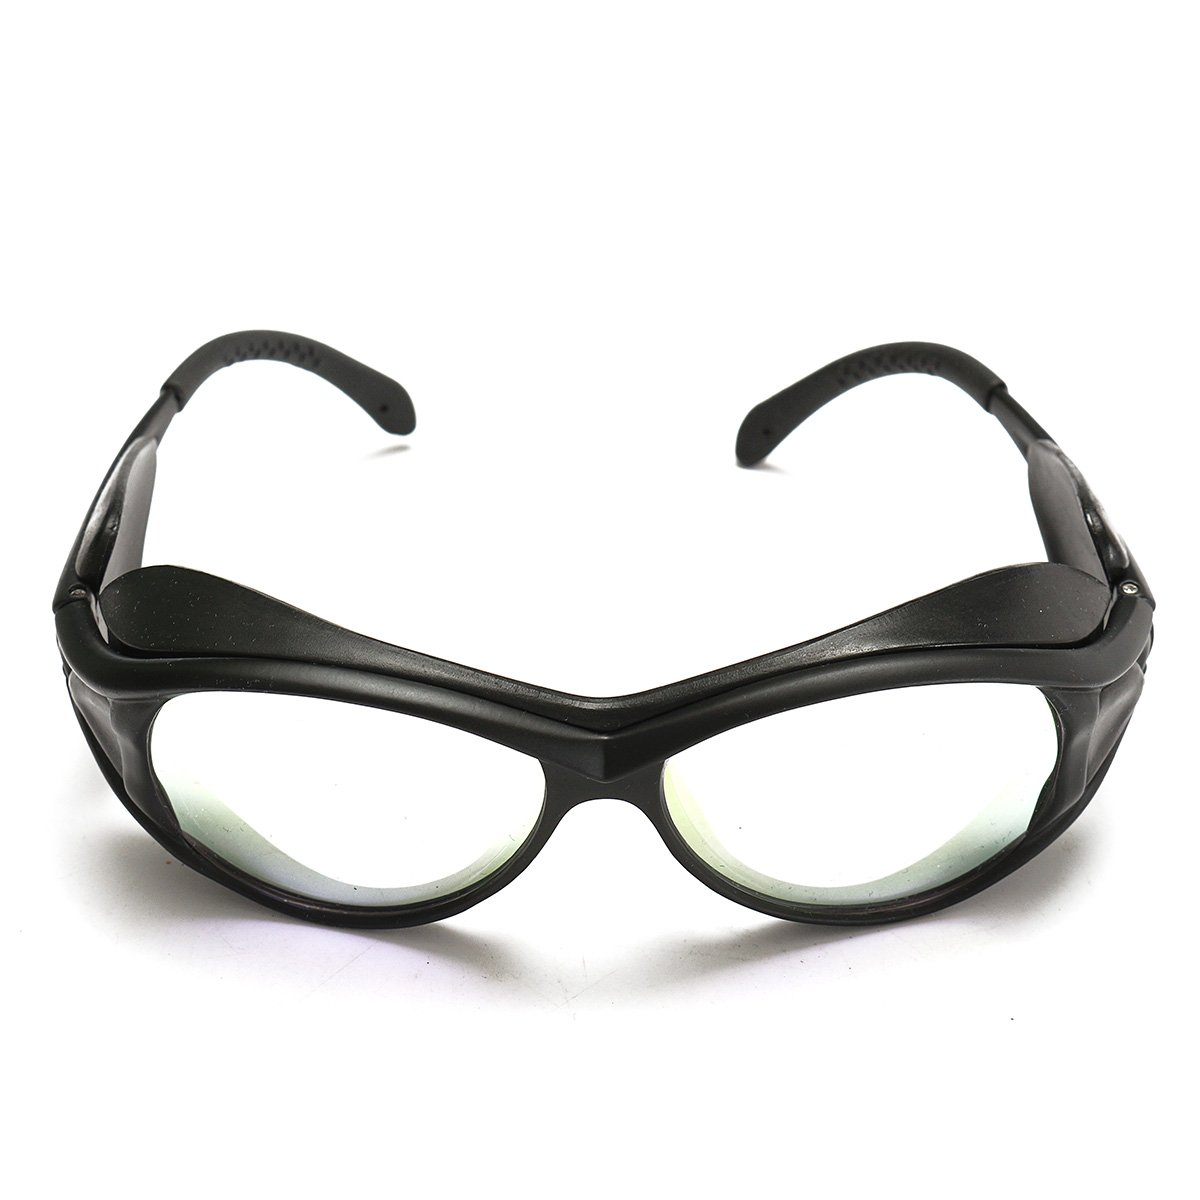 CO2 Protective Goggles Double-Layer Professional Glasses 10.6um OD+7